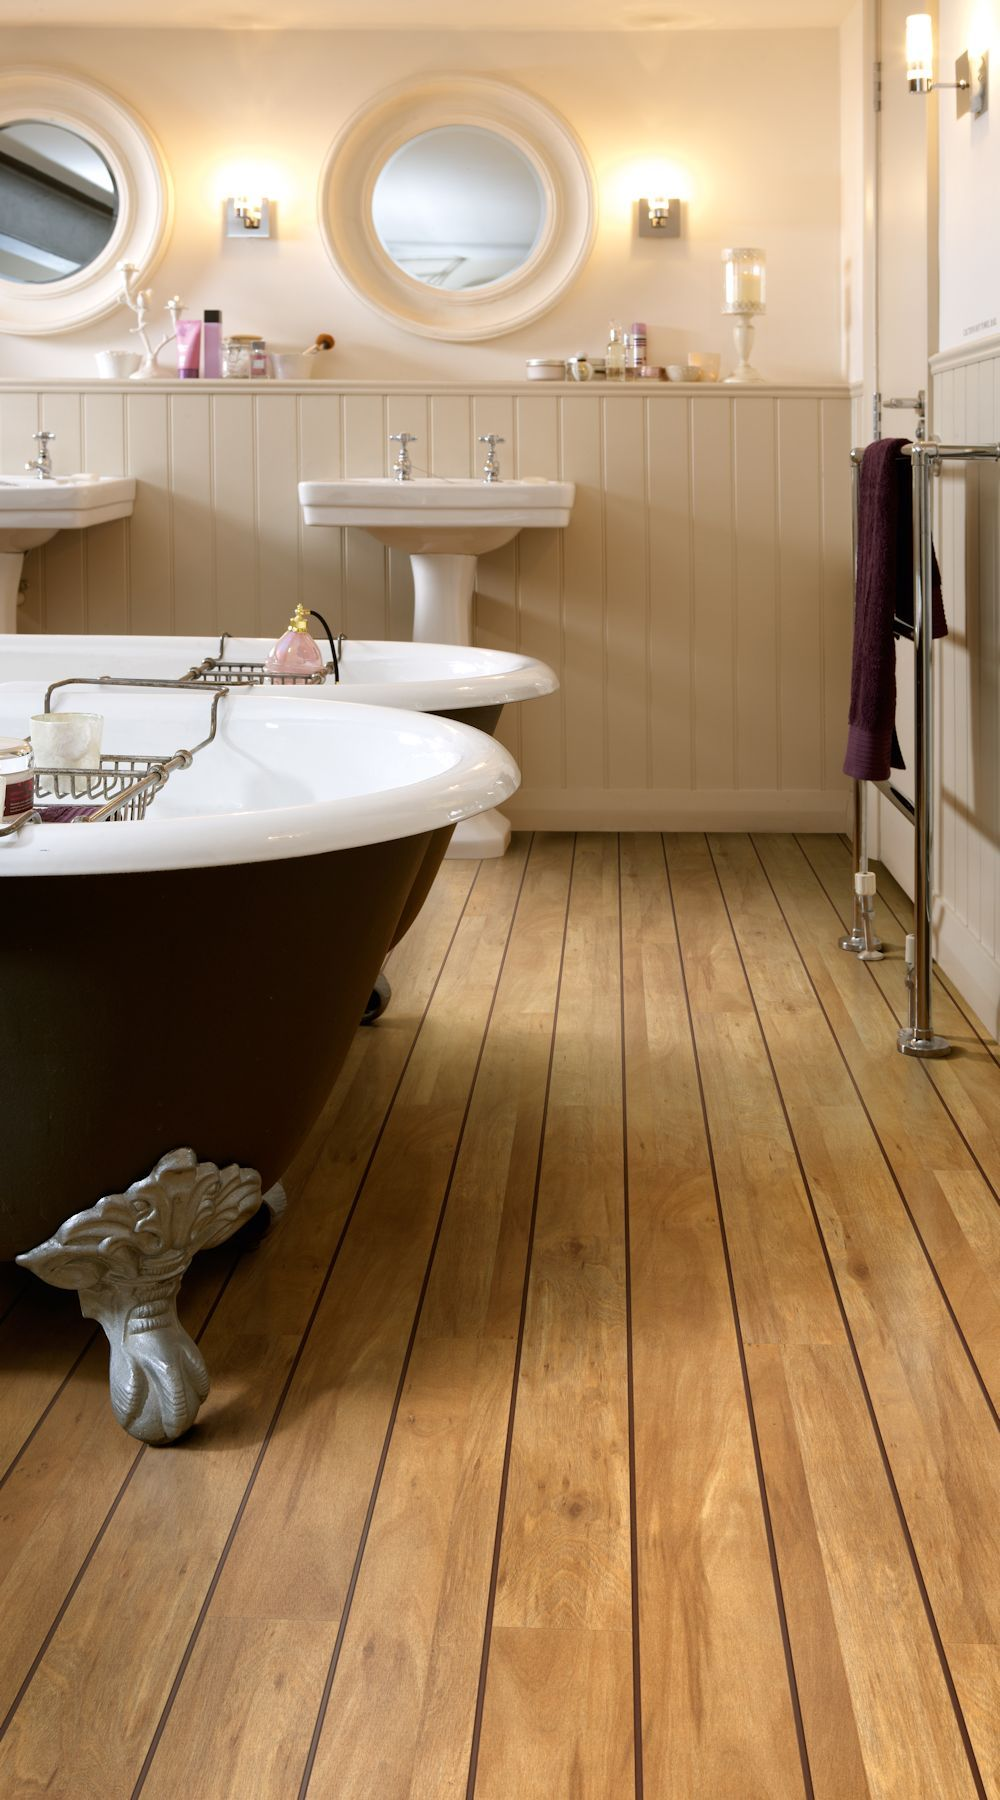 Wood effect colonia golden koa luxury vinyl tile flooring for Wood effect vinyl flooring bathroom